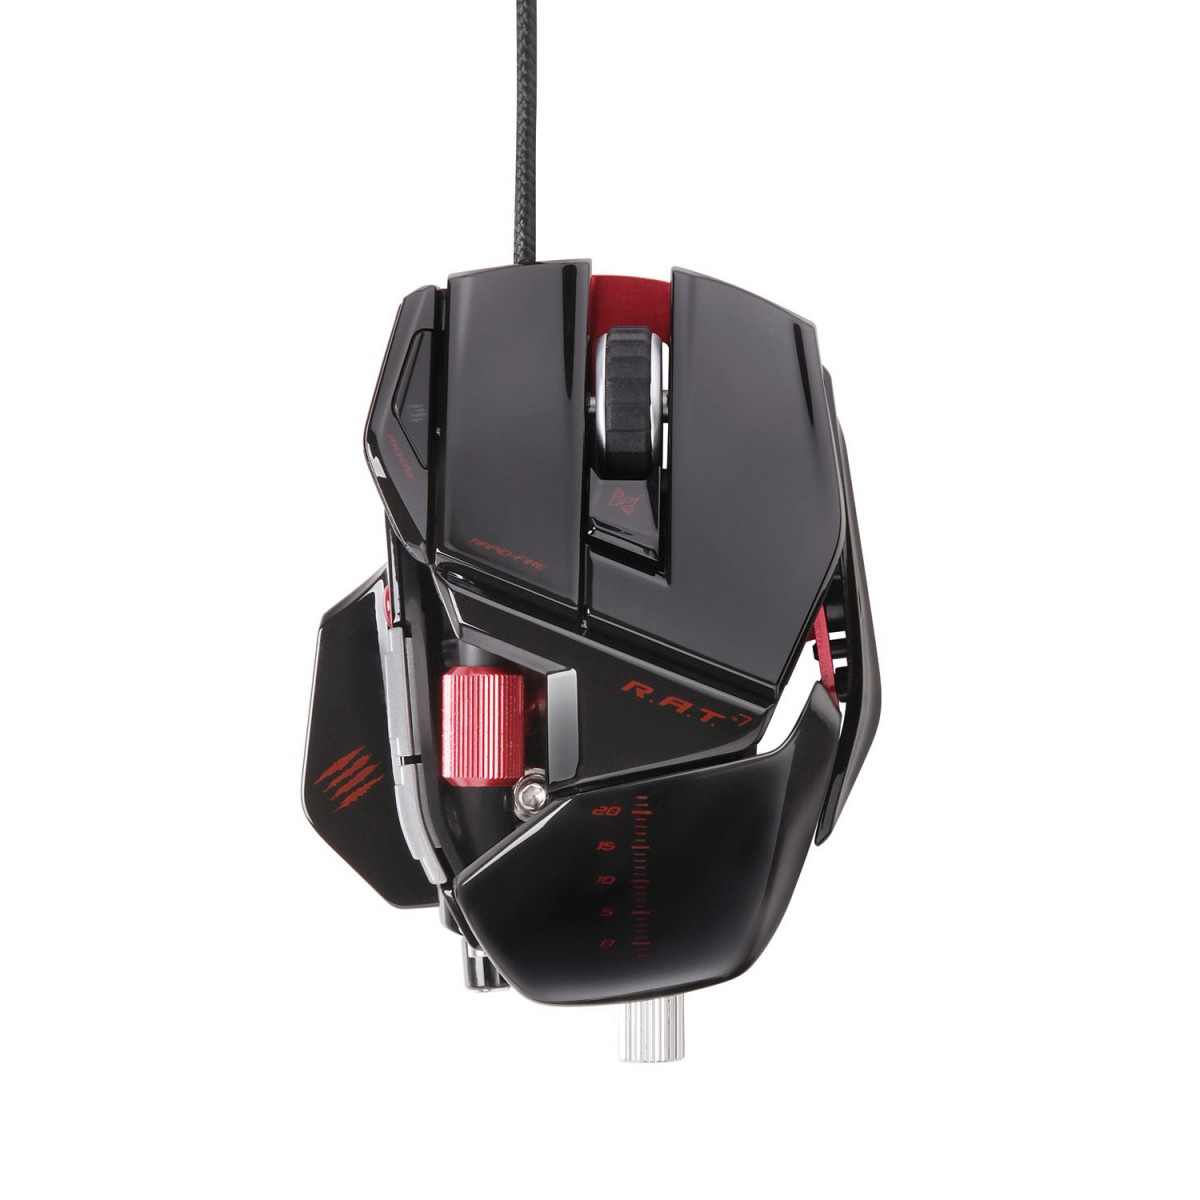 21f7ad5246b Mad Catz Gaming Mouse Price in Pakistan | Buy Mad Catz R.A.T. 7 Gaming Mouse  for PC and Mac | iShopping.pk